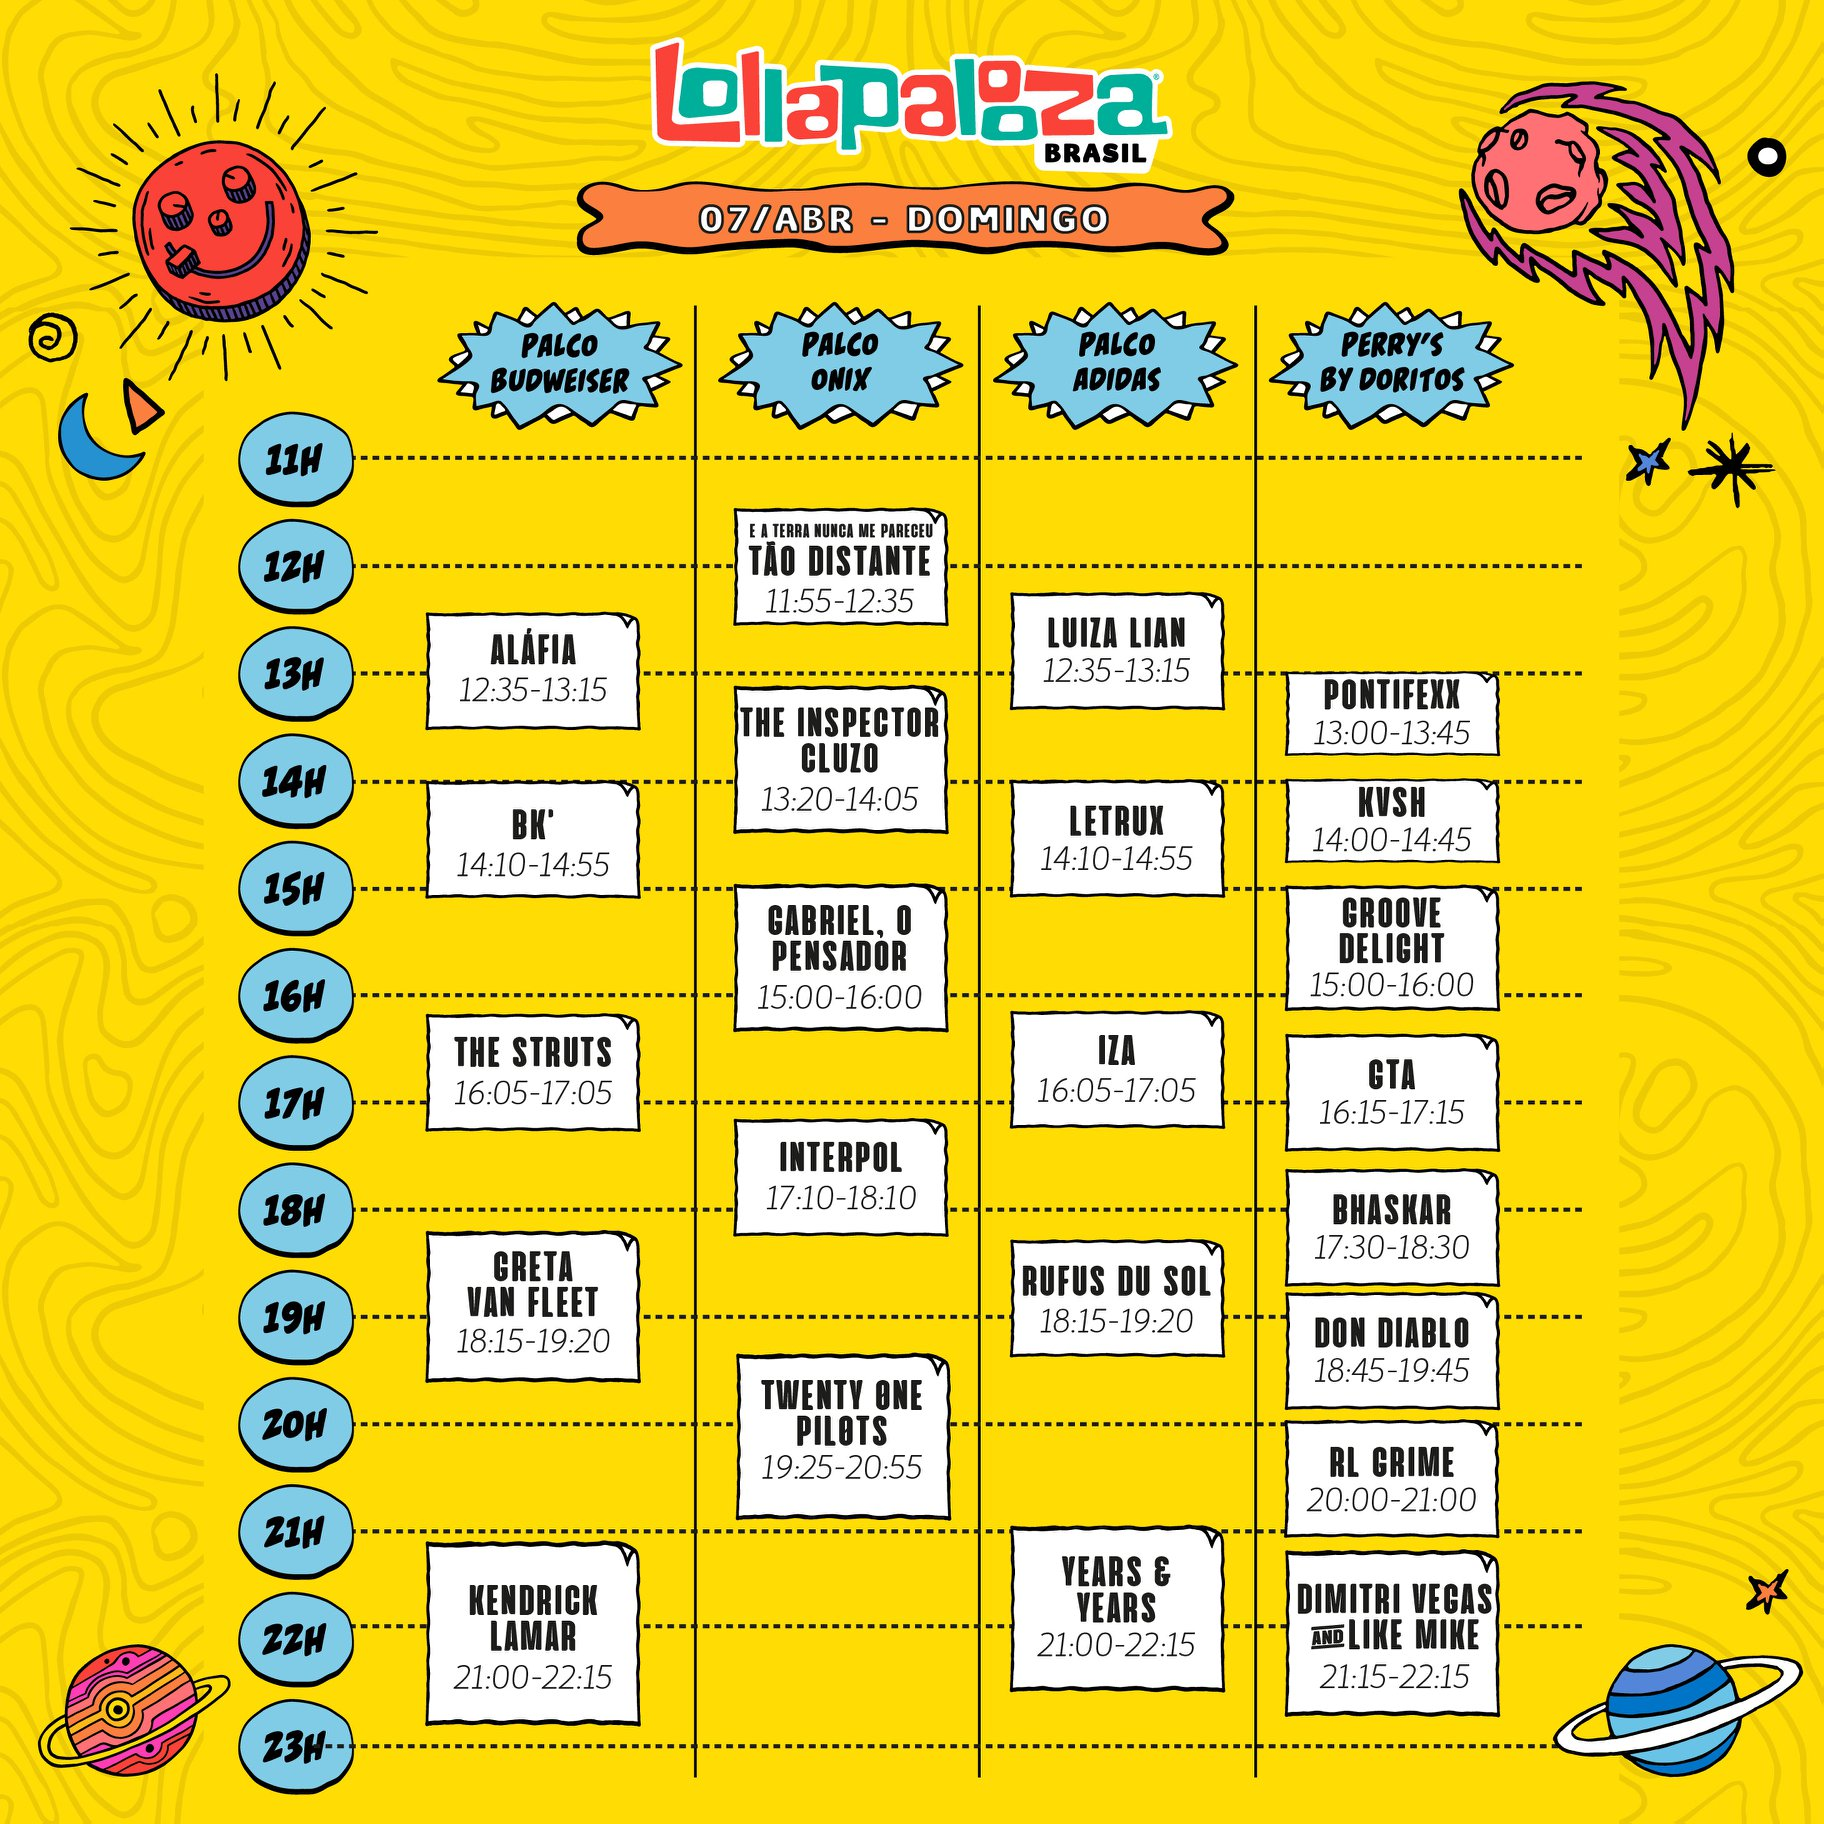 domingo 7 de abril lollapalooza